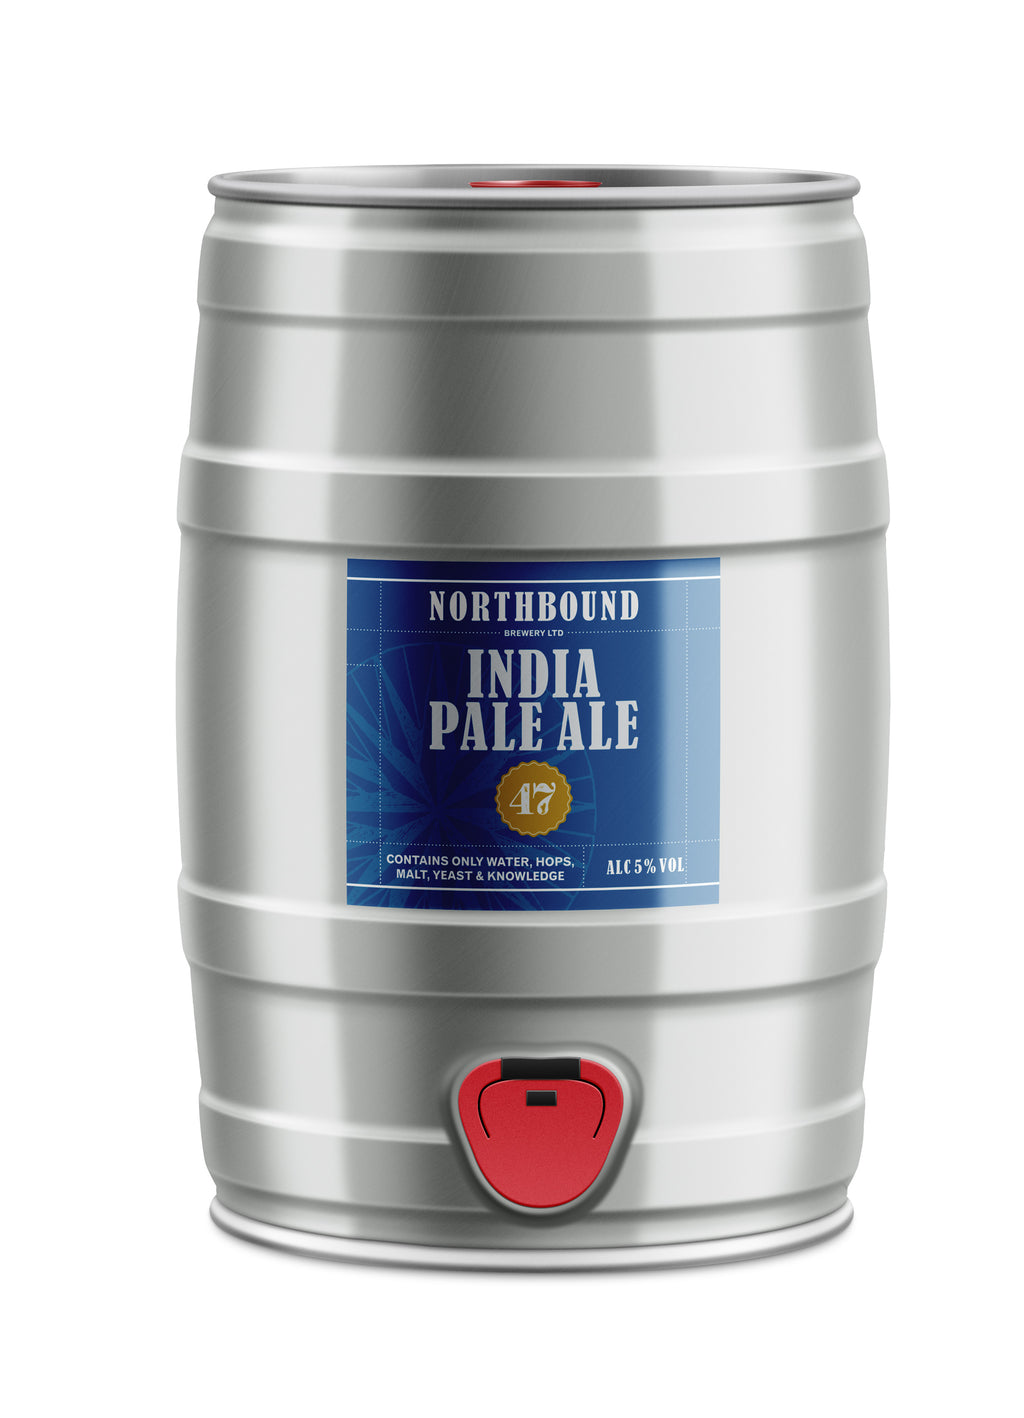 47 India Pale Ale - 5L Mini Keg